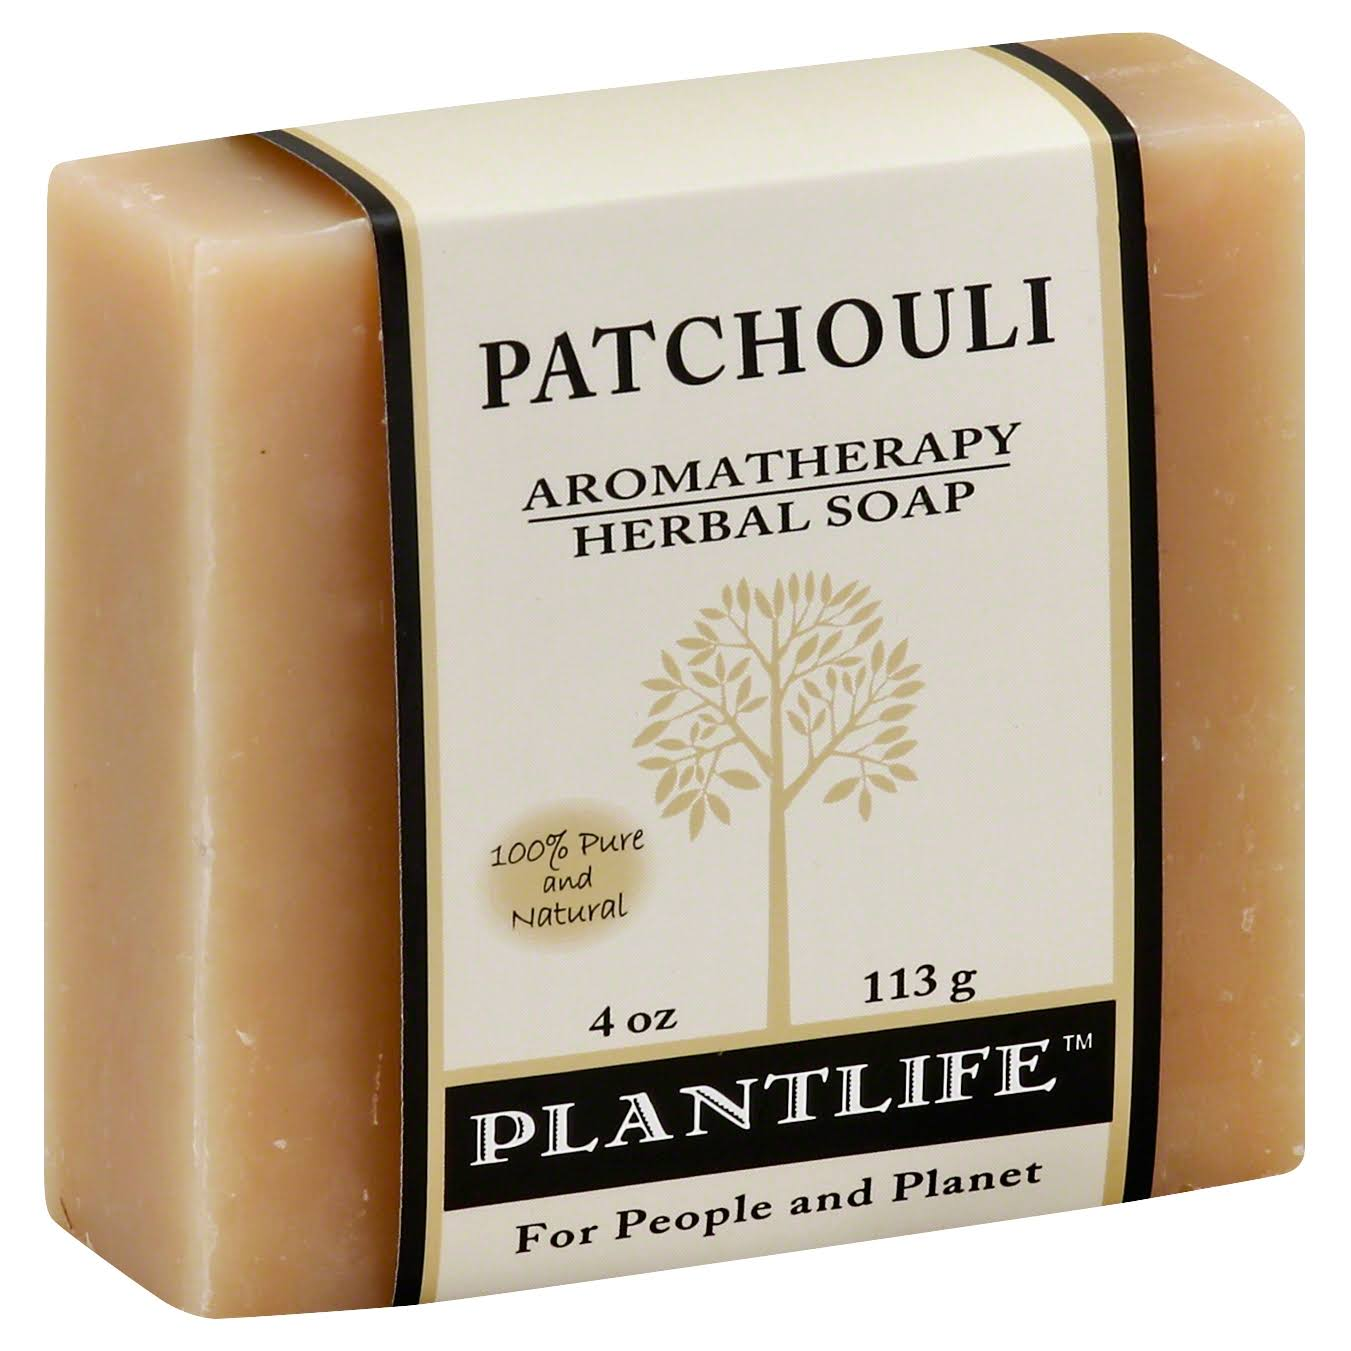 Patchouli Aromatherapy Herbal Soap - 120ml